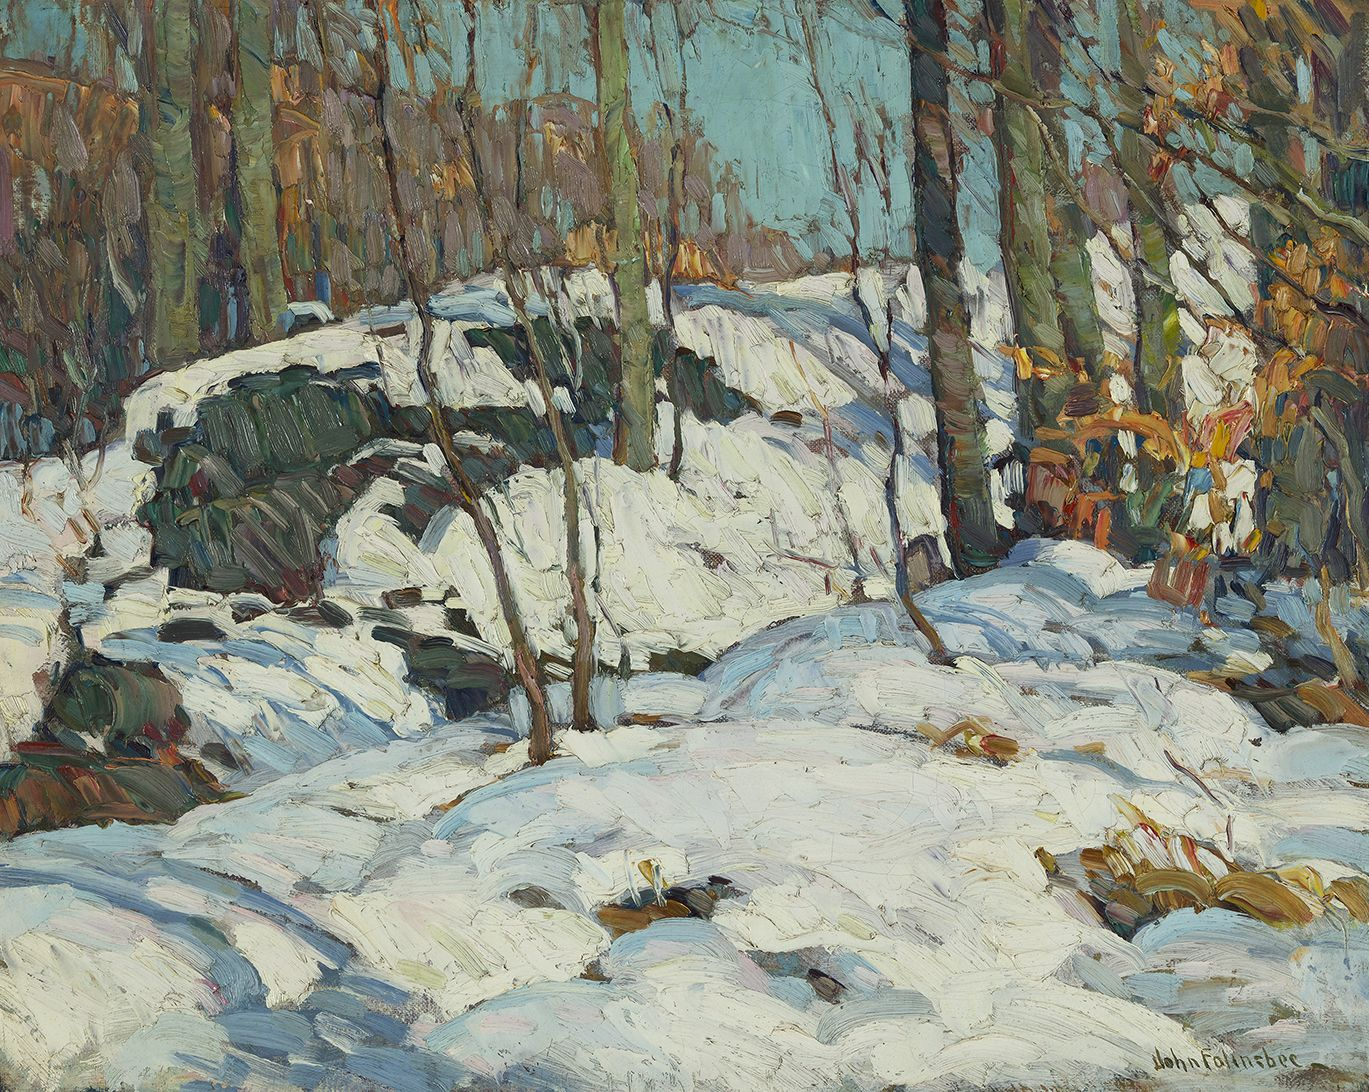 John Fulton Folinsbee (1892-1972), Winter Sunlight, 1919-1920